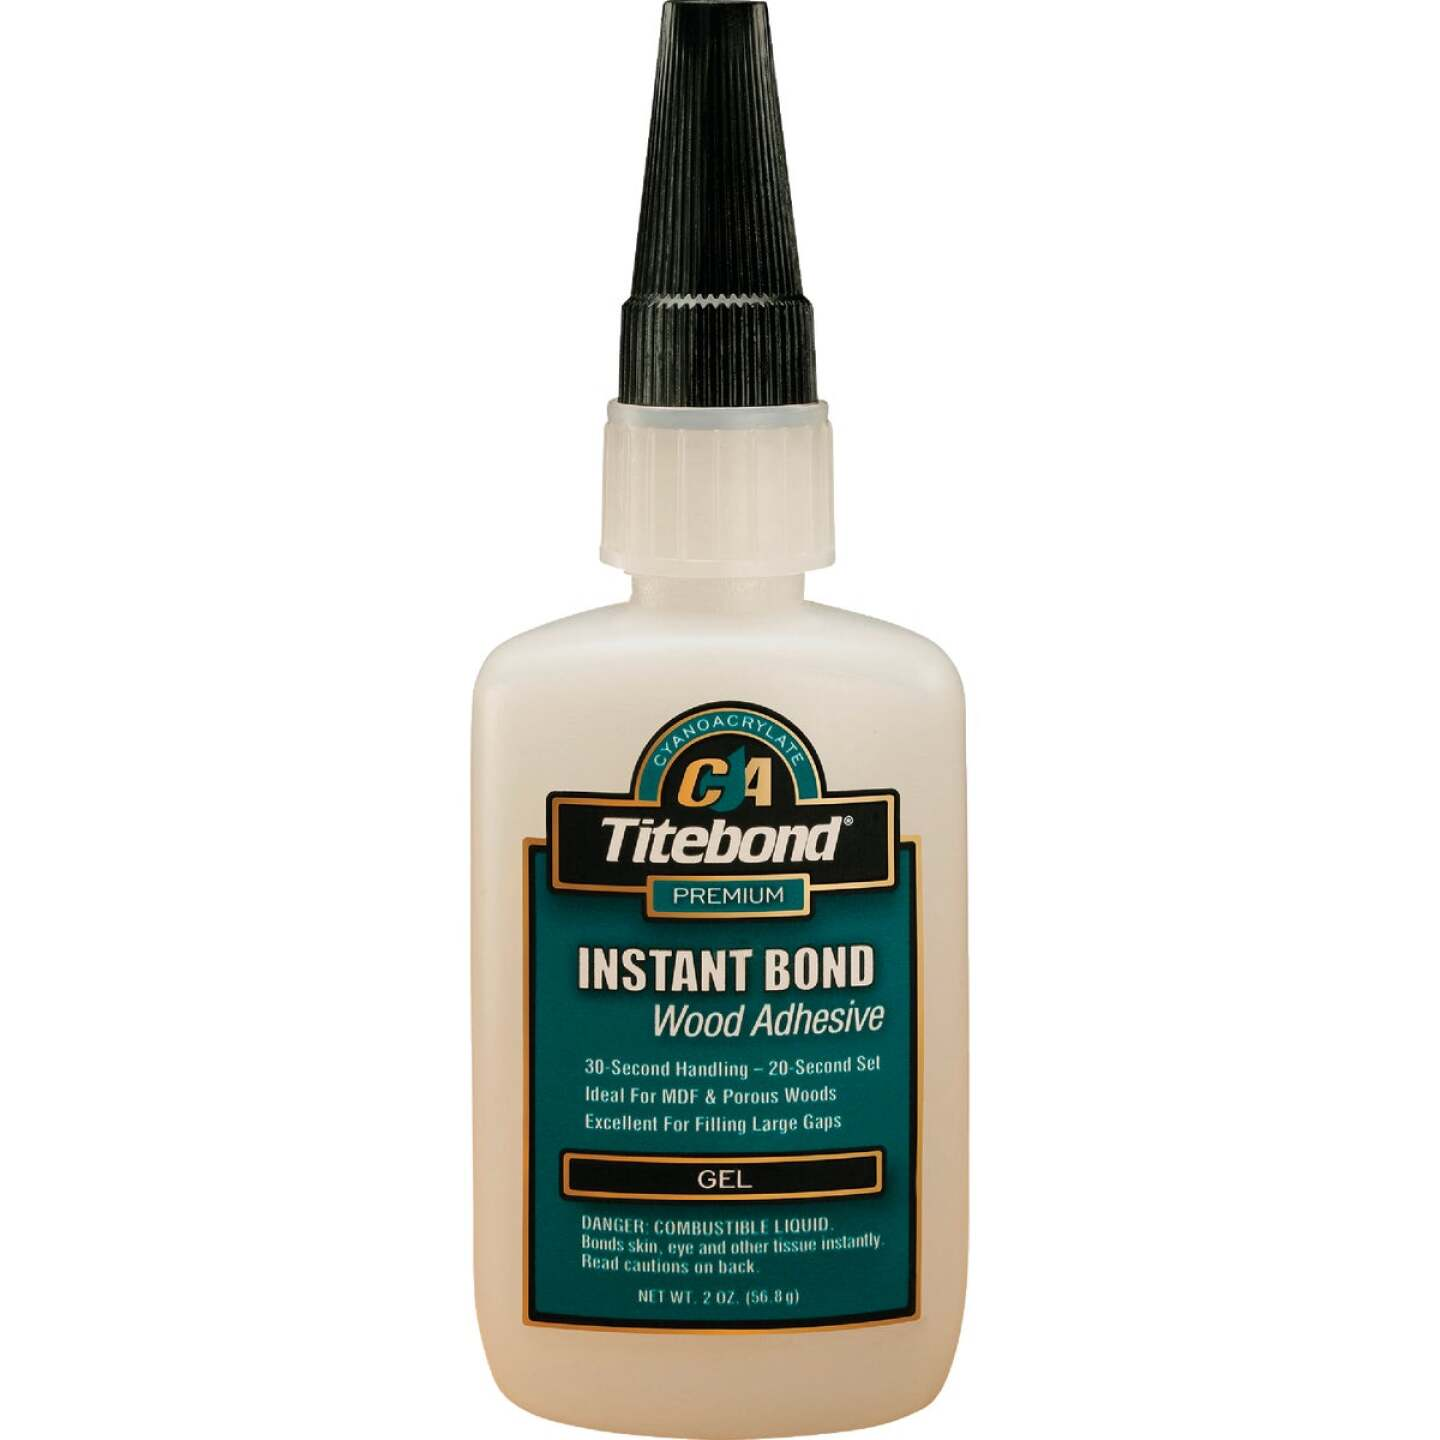 Titebond 2 Oz. Instant Bond Gel Viscosity CA Wood Glue Image 1